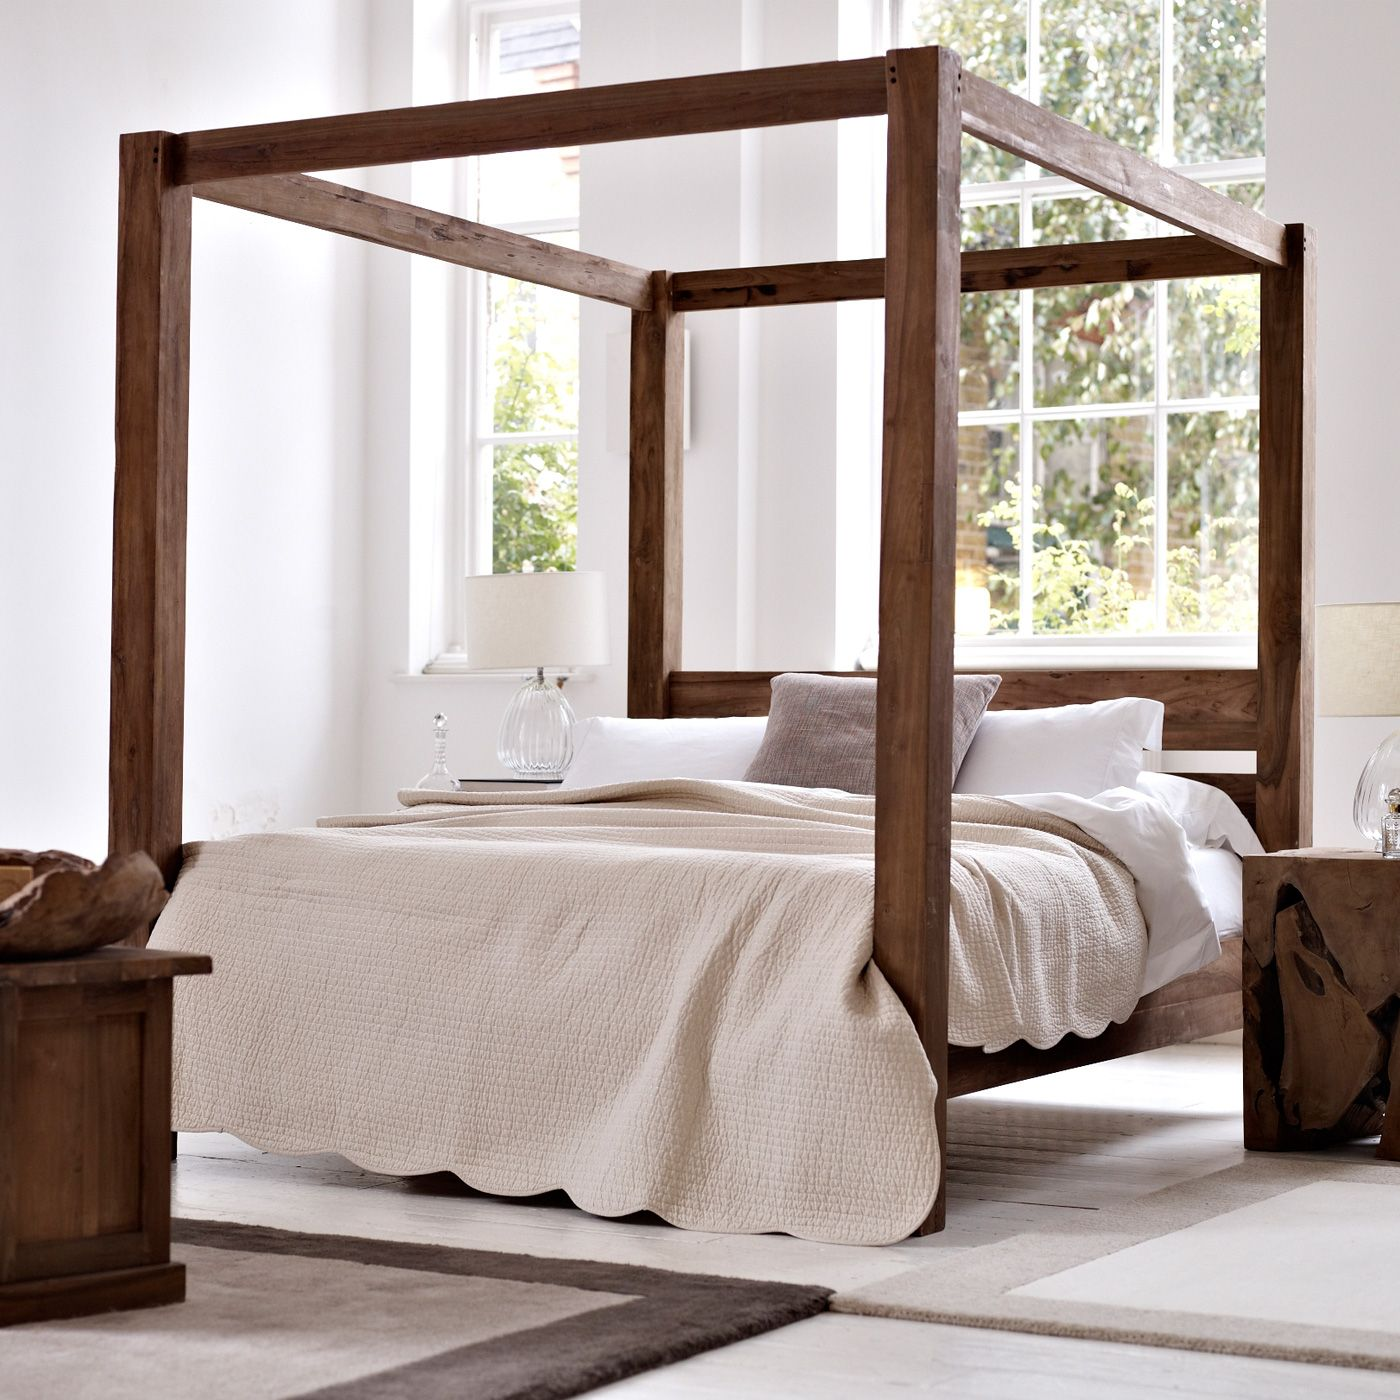 Four Poster Bed - Raft Furniture, London